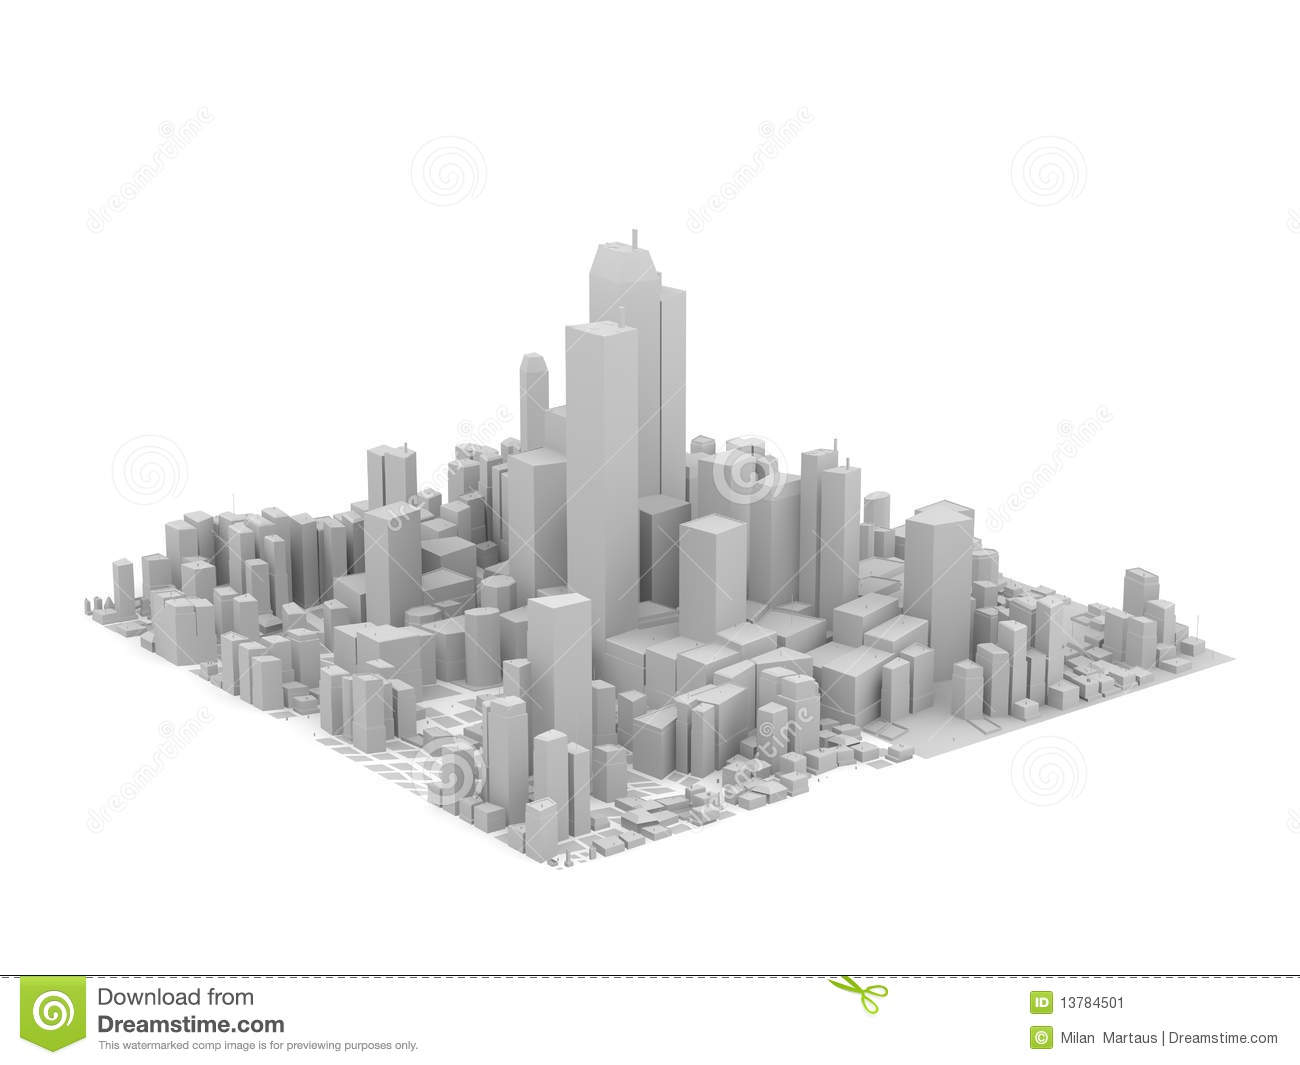 Pictures Of Toy Models Of Cities : Grey city model stock illustration image of color